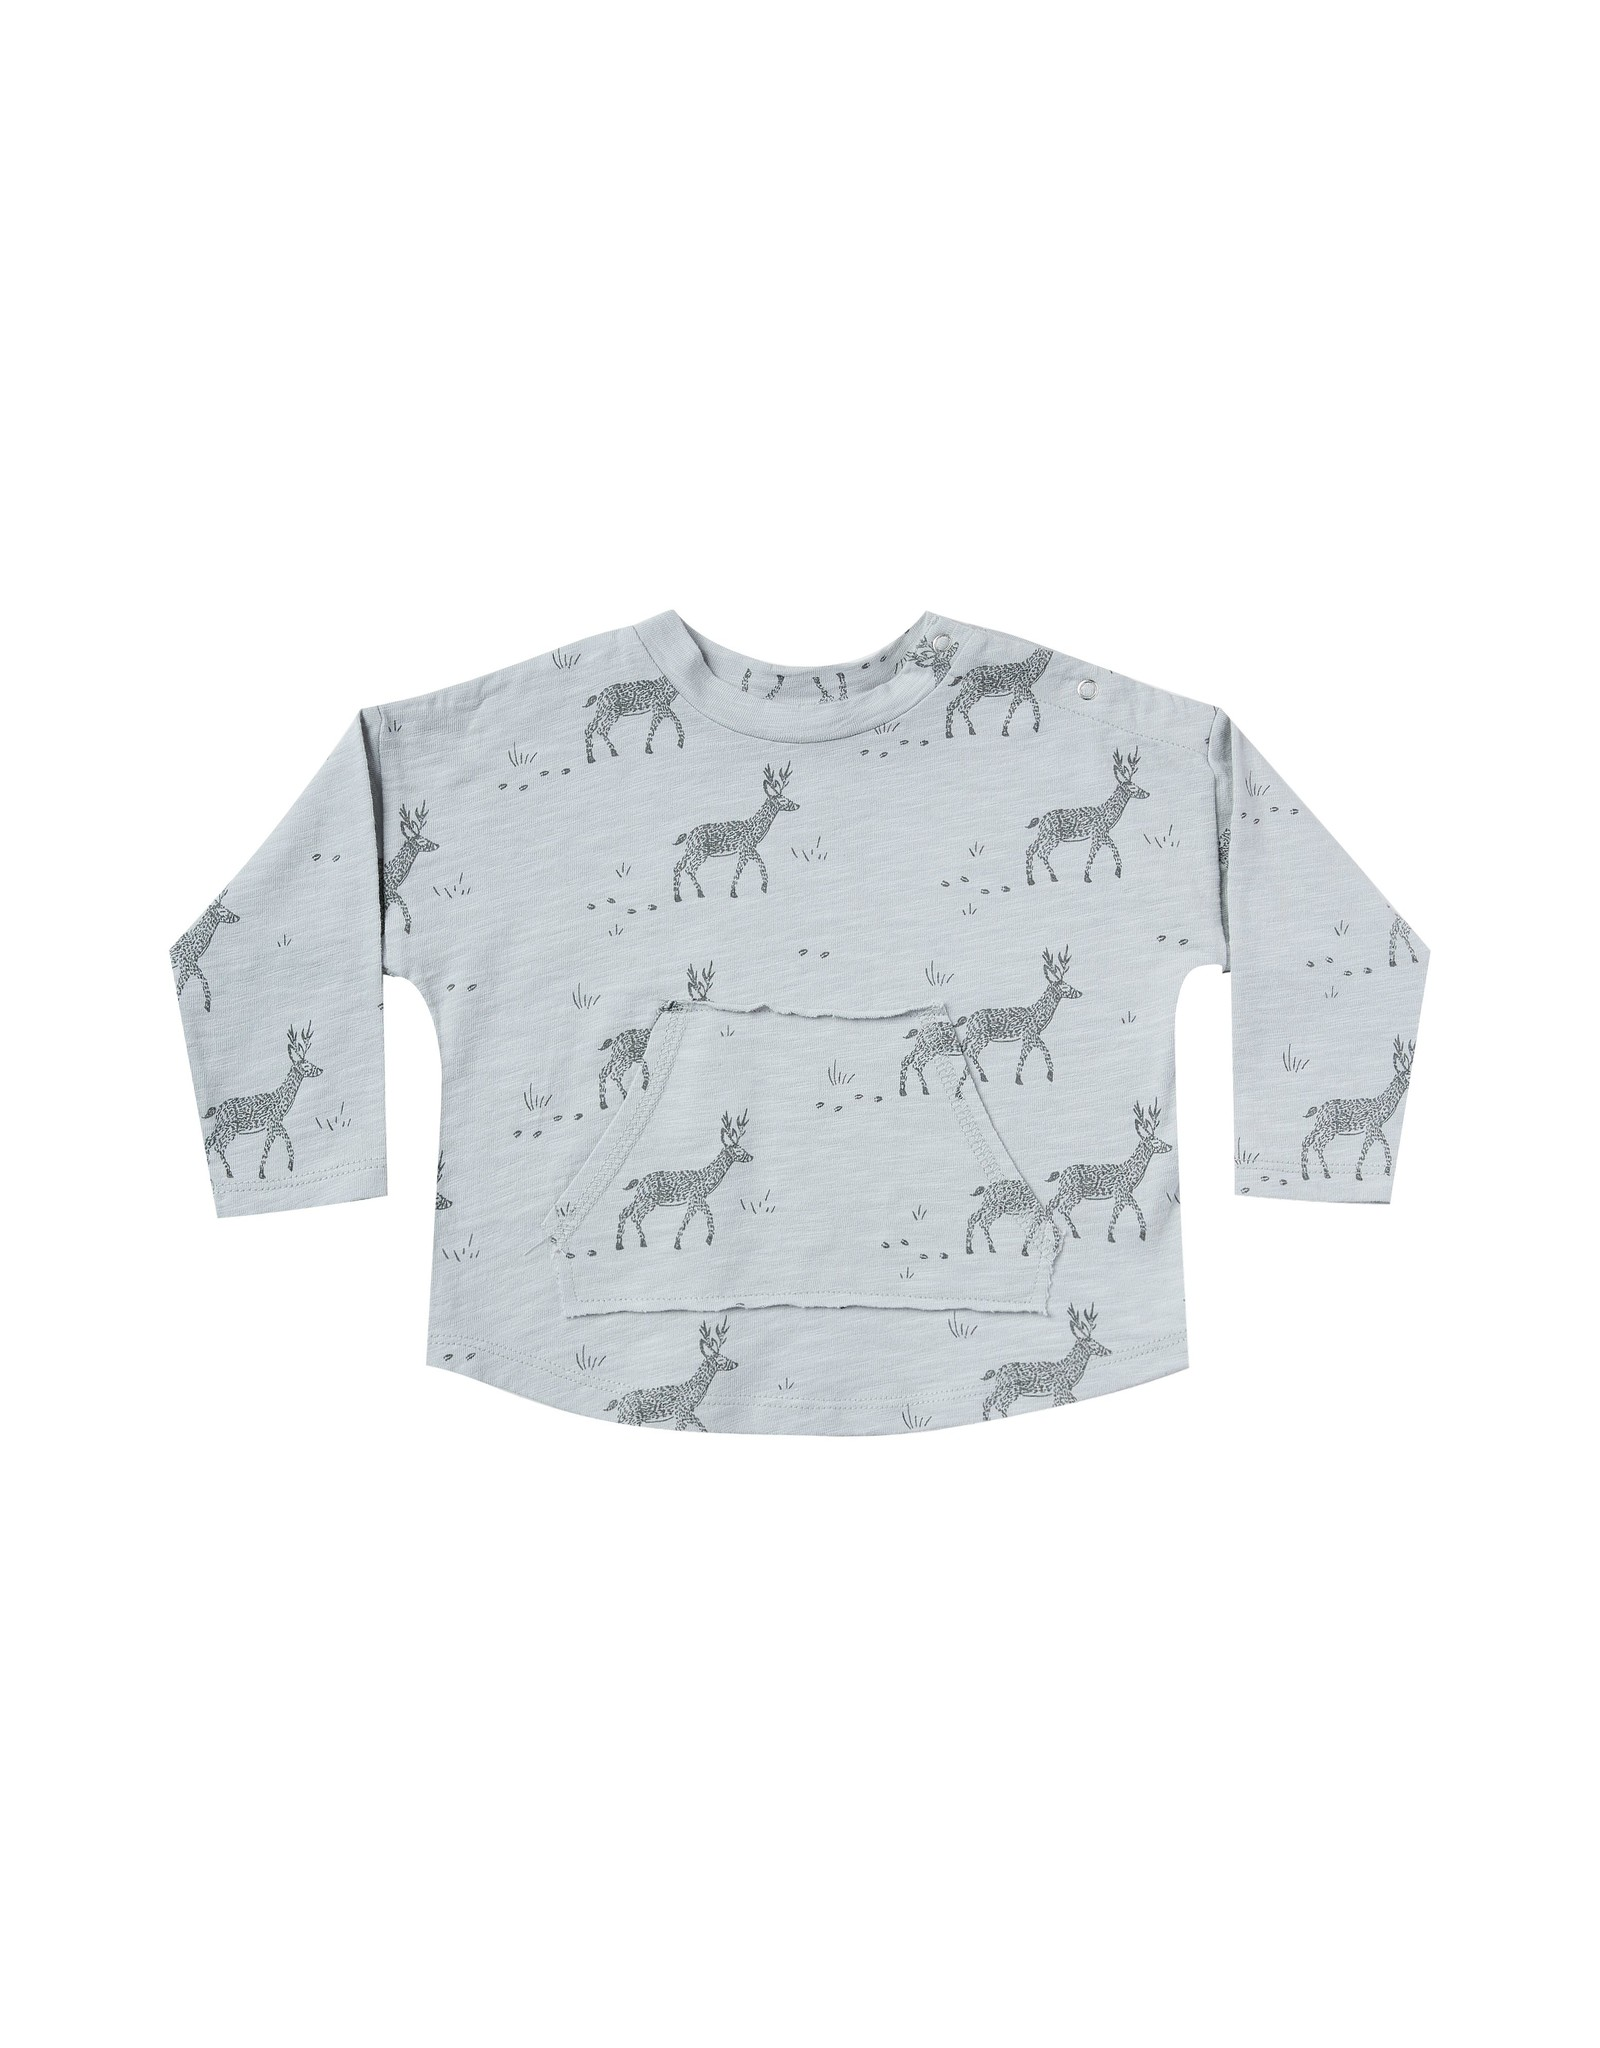 Rylee and Cru buck pouch tee